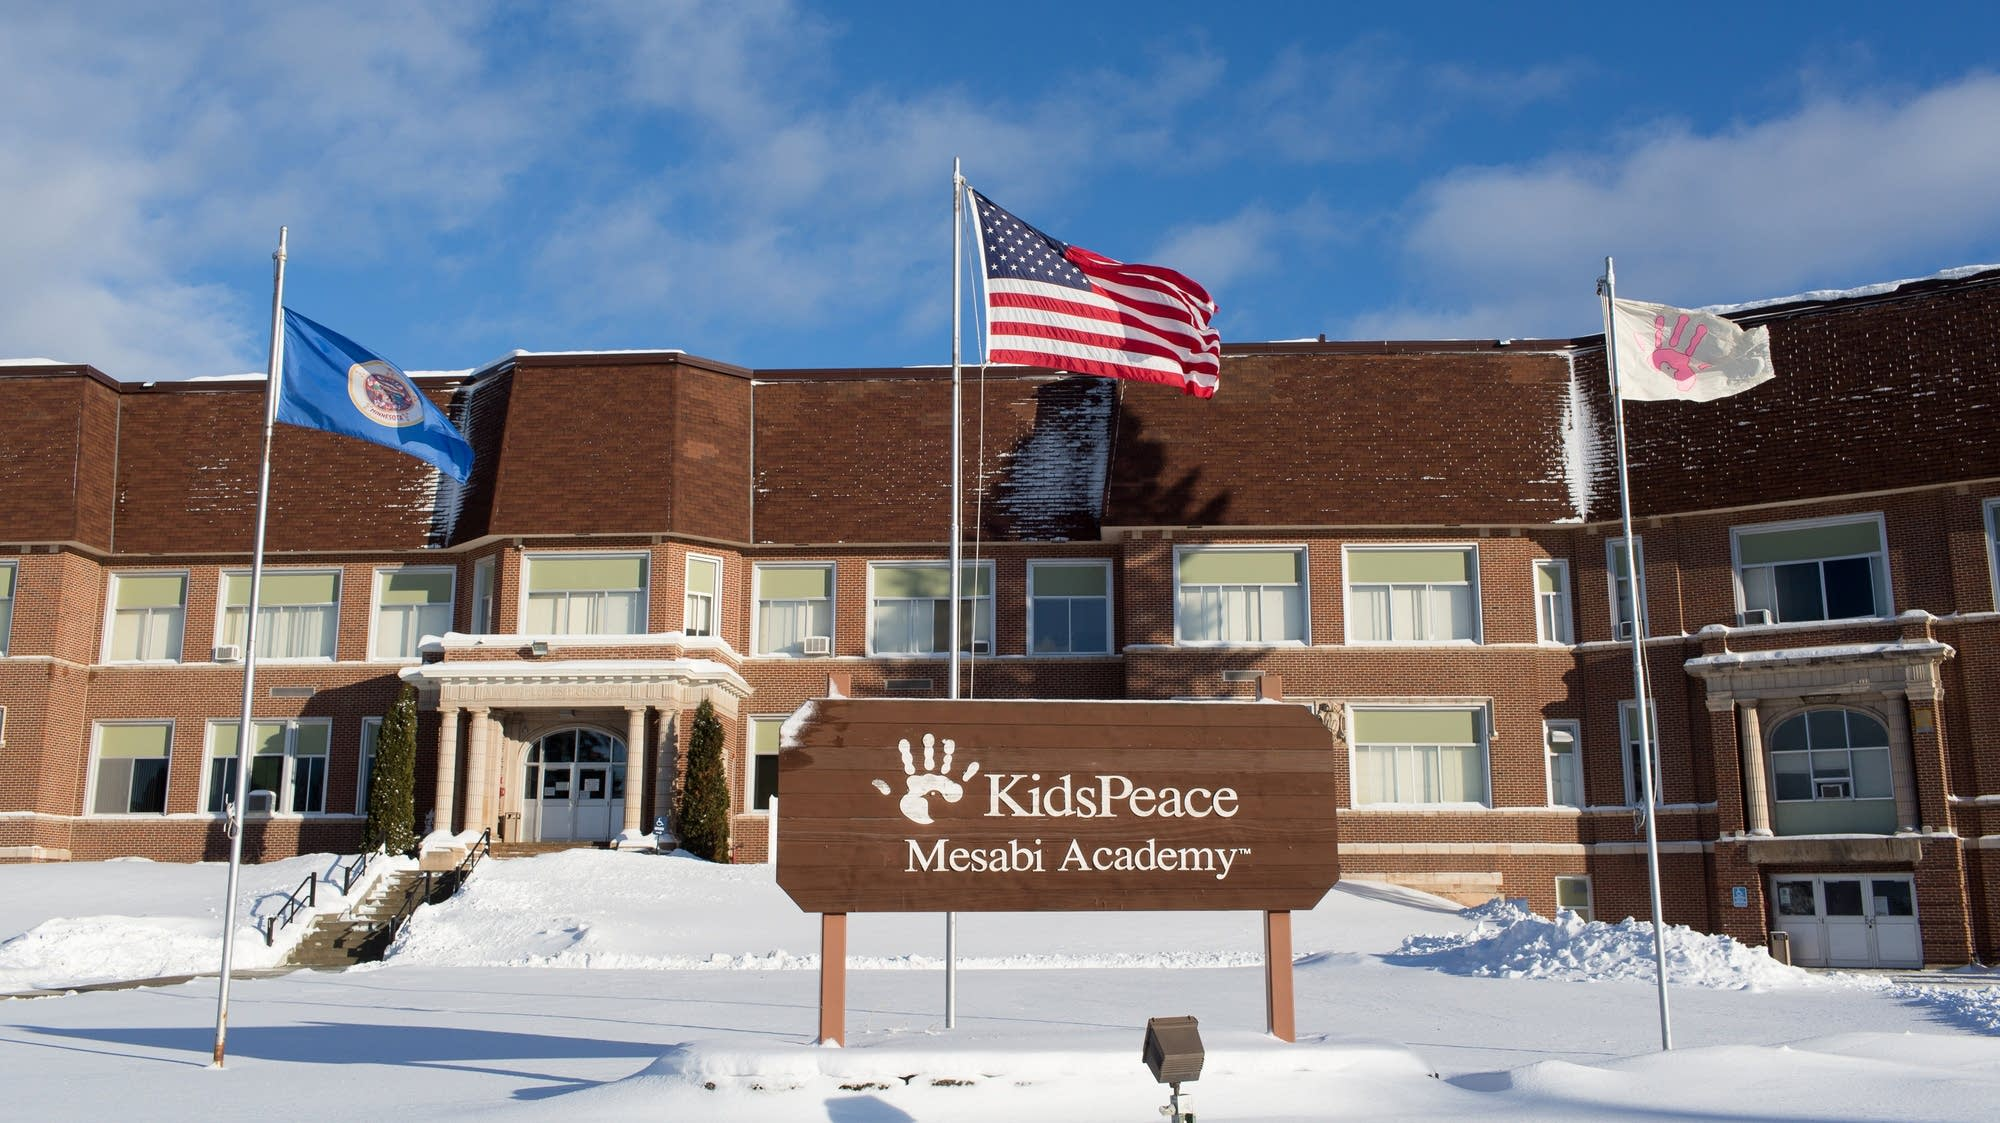 Mesabi Academy operates in a former high school.